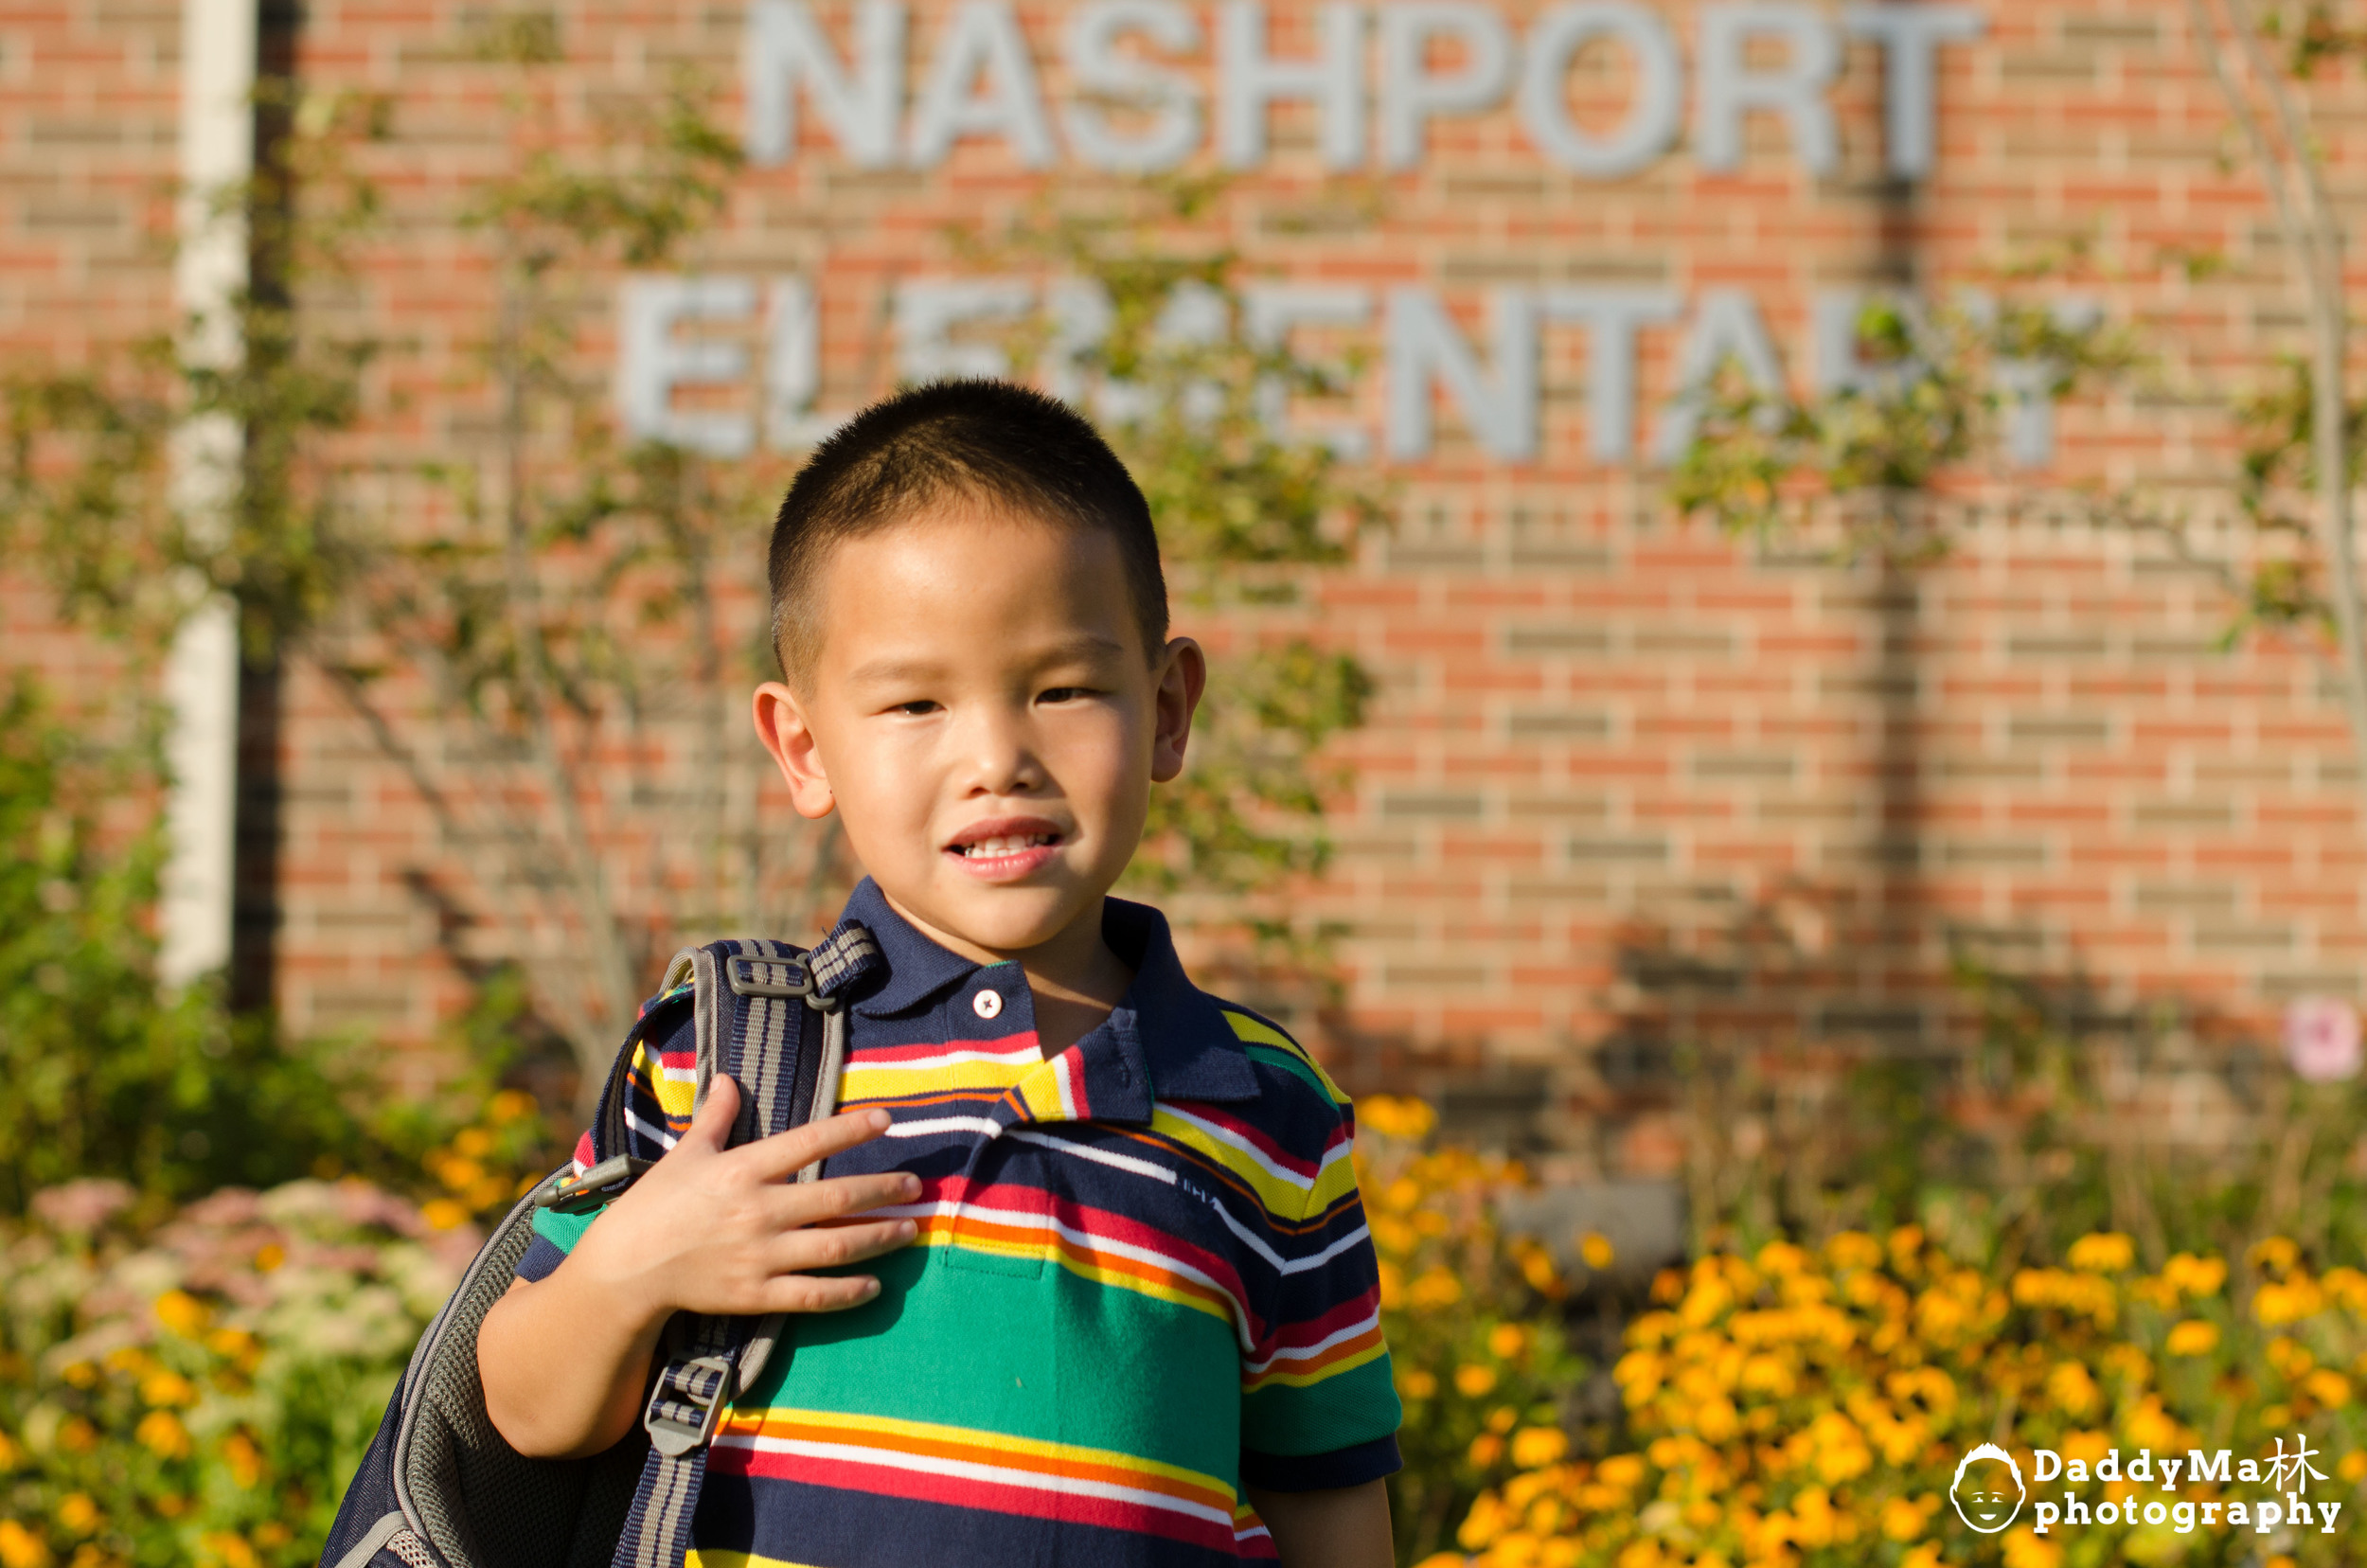 First Day of kindergarten at nashport Elementary